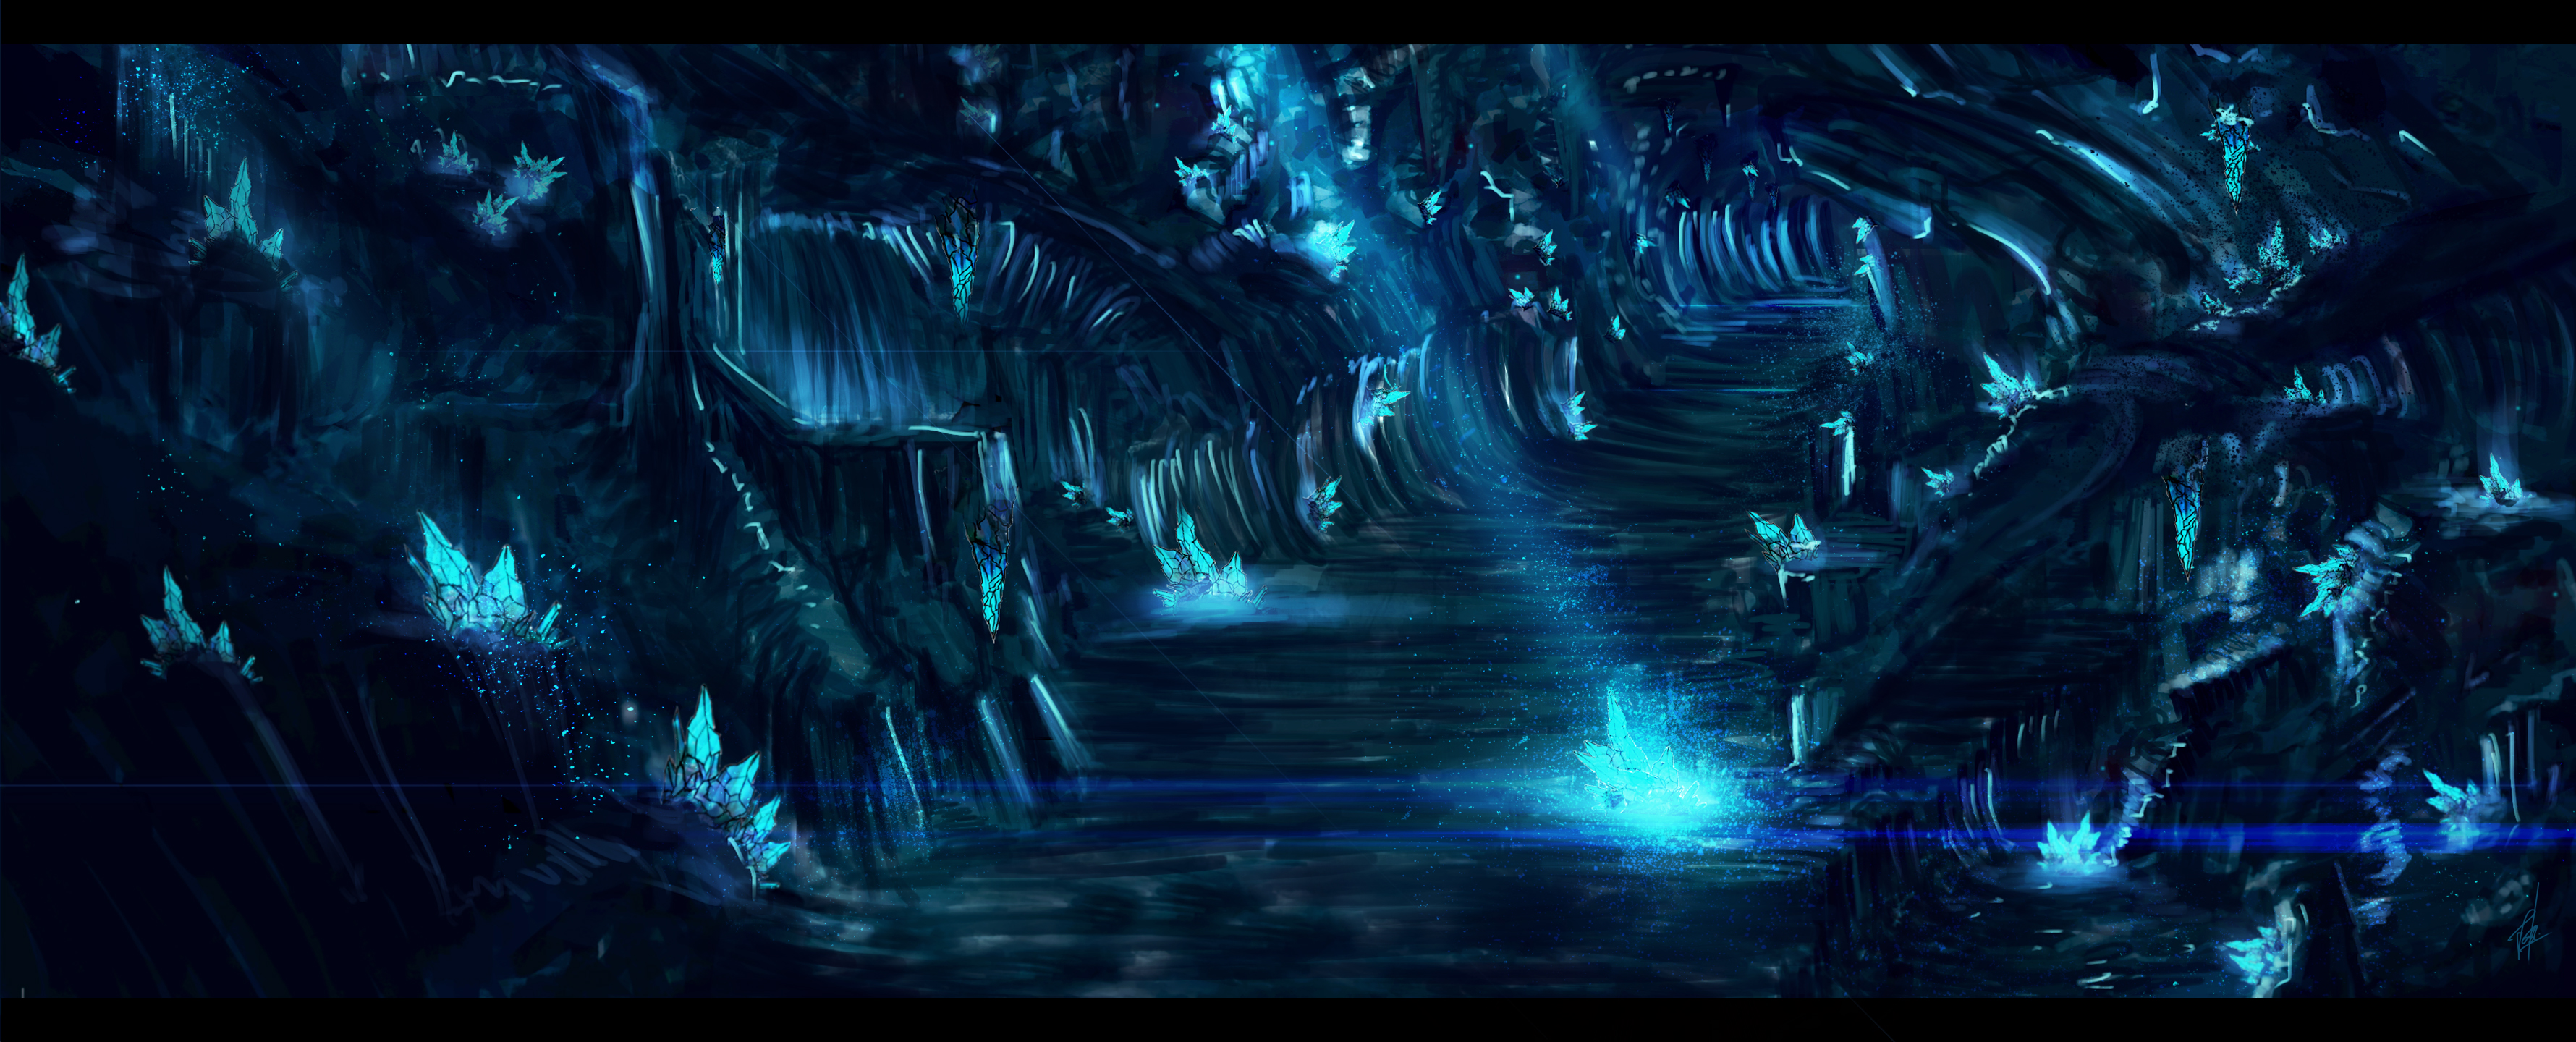 Crystal cave by joshualim91 on deviantart for Paintings of crystals